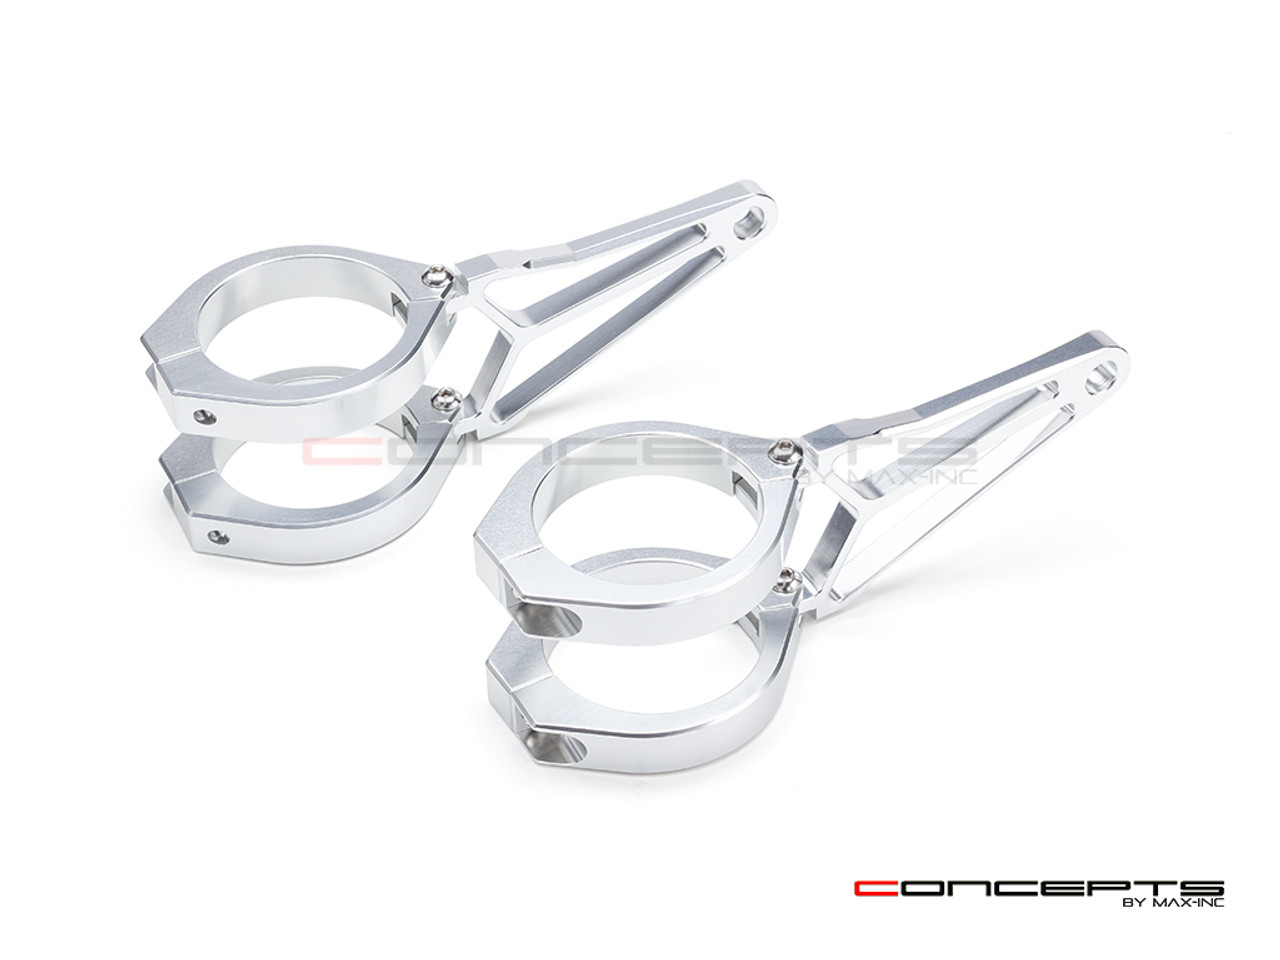 MAX Razor Polished CNC Machined Aluminum Headlight Brackets  - Fits Fork Sizes 32 - 59mm